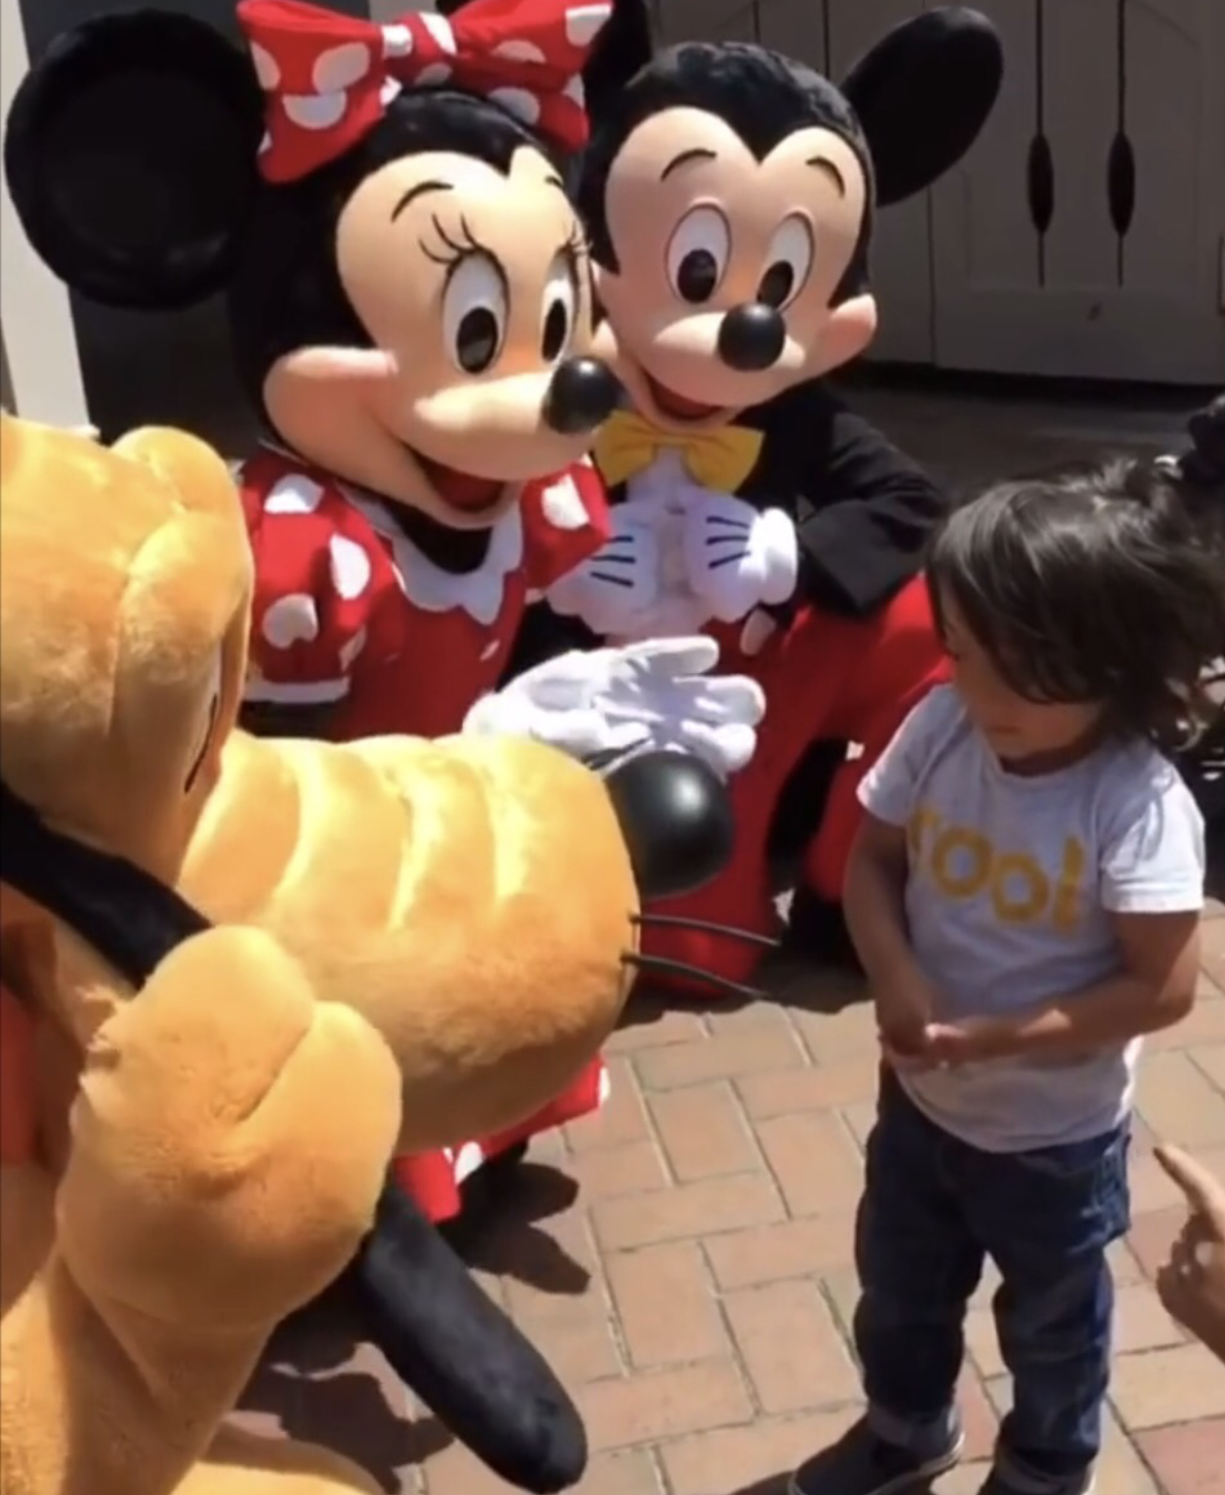 Watch: this adorable video shows Mickey and Minnie Mouse signing for a deaf little boy in Disneyland